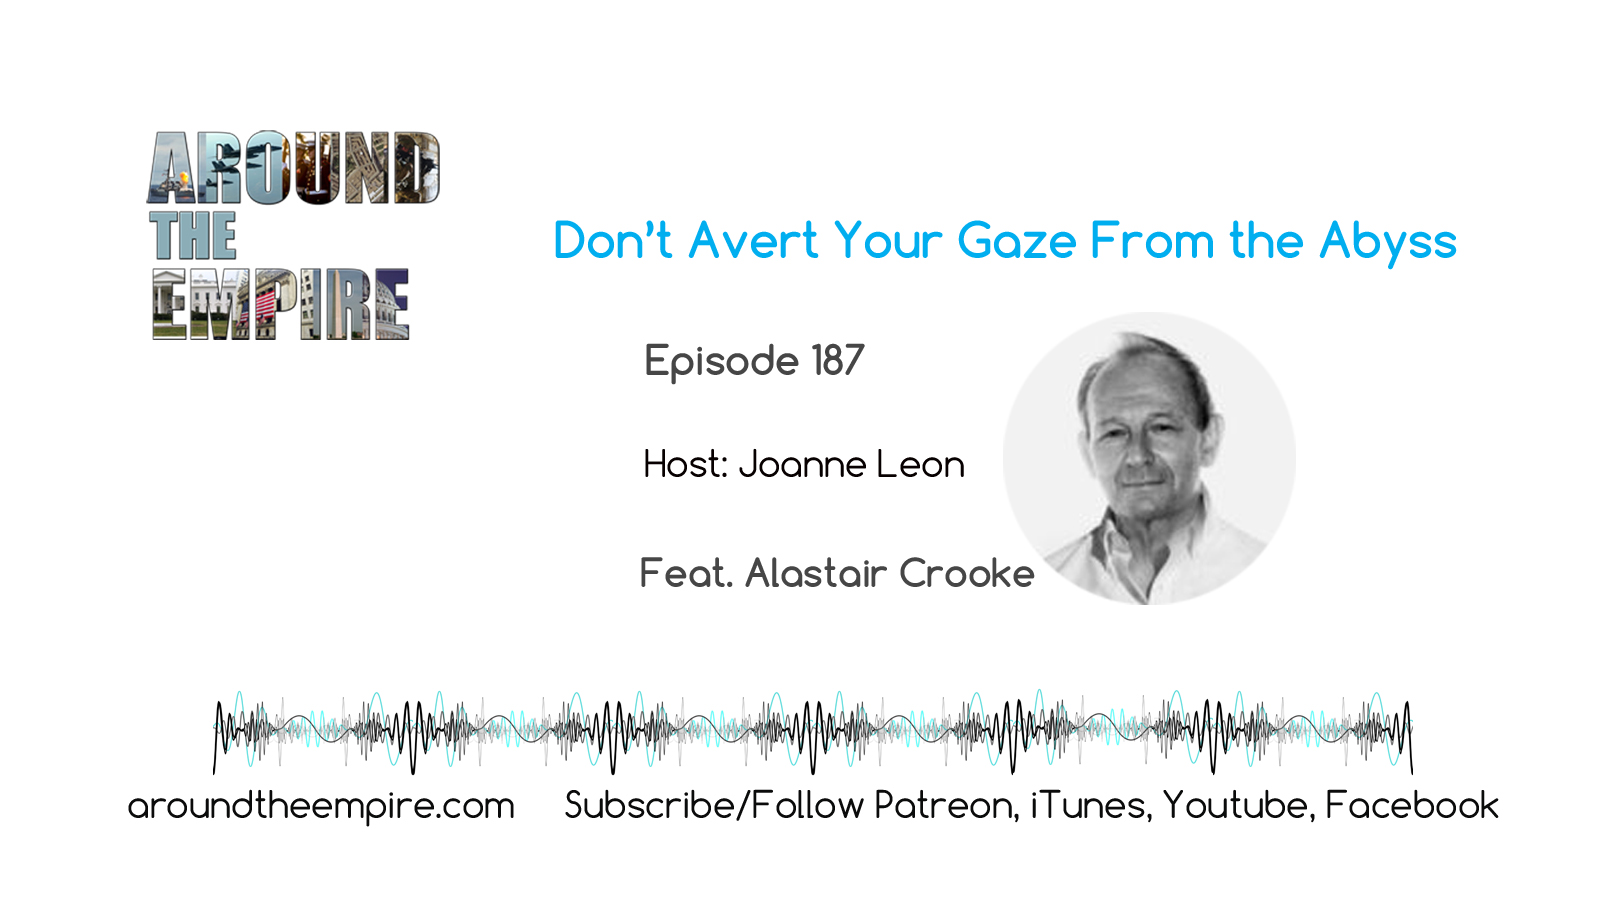 Ep 187 Don't Avert Your Gaze From the Abyss feat Alastair Crooke